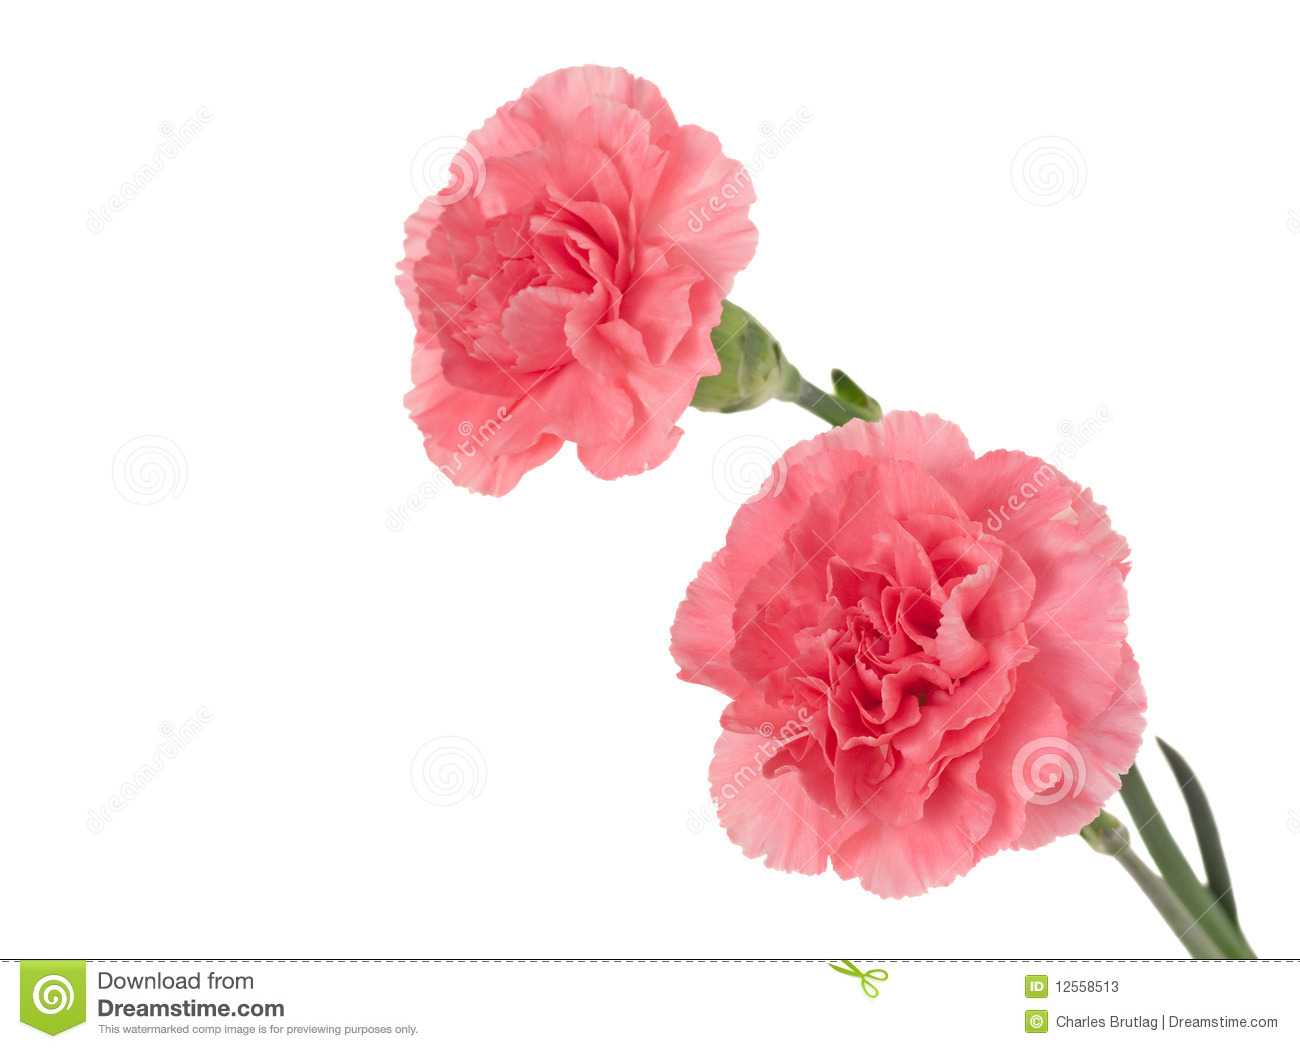 Two Pink Carnations Isolated On A White Background